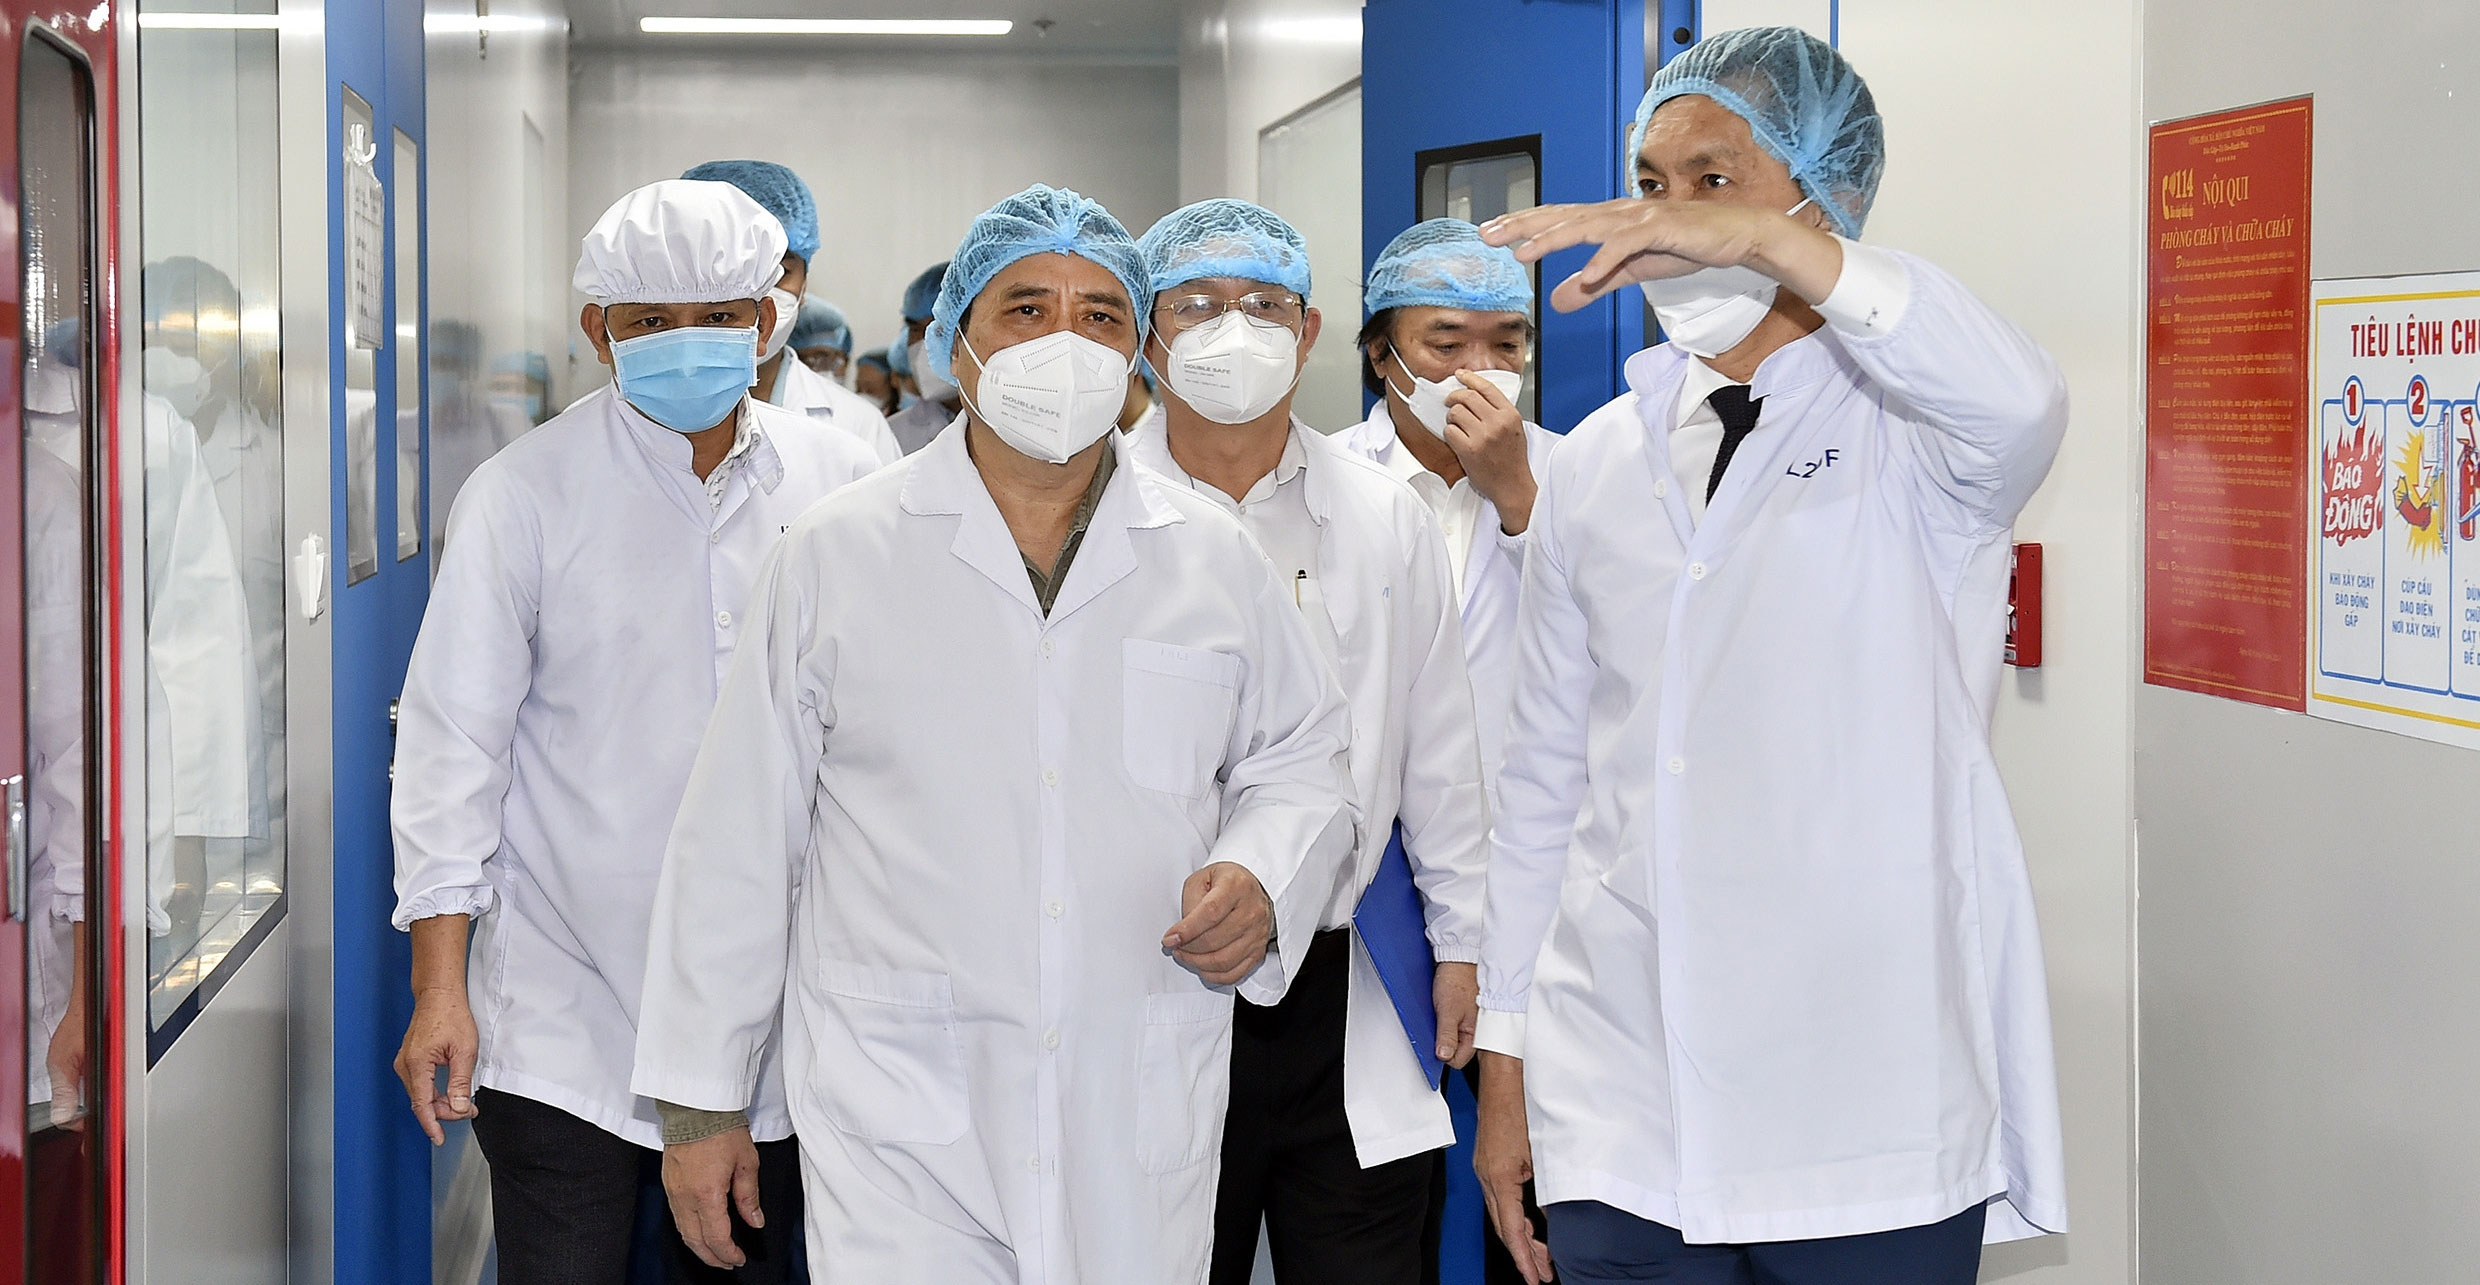 PM inspects pandemic fight in Ho Chi Minh City